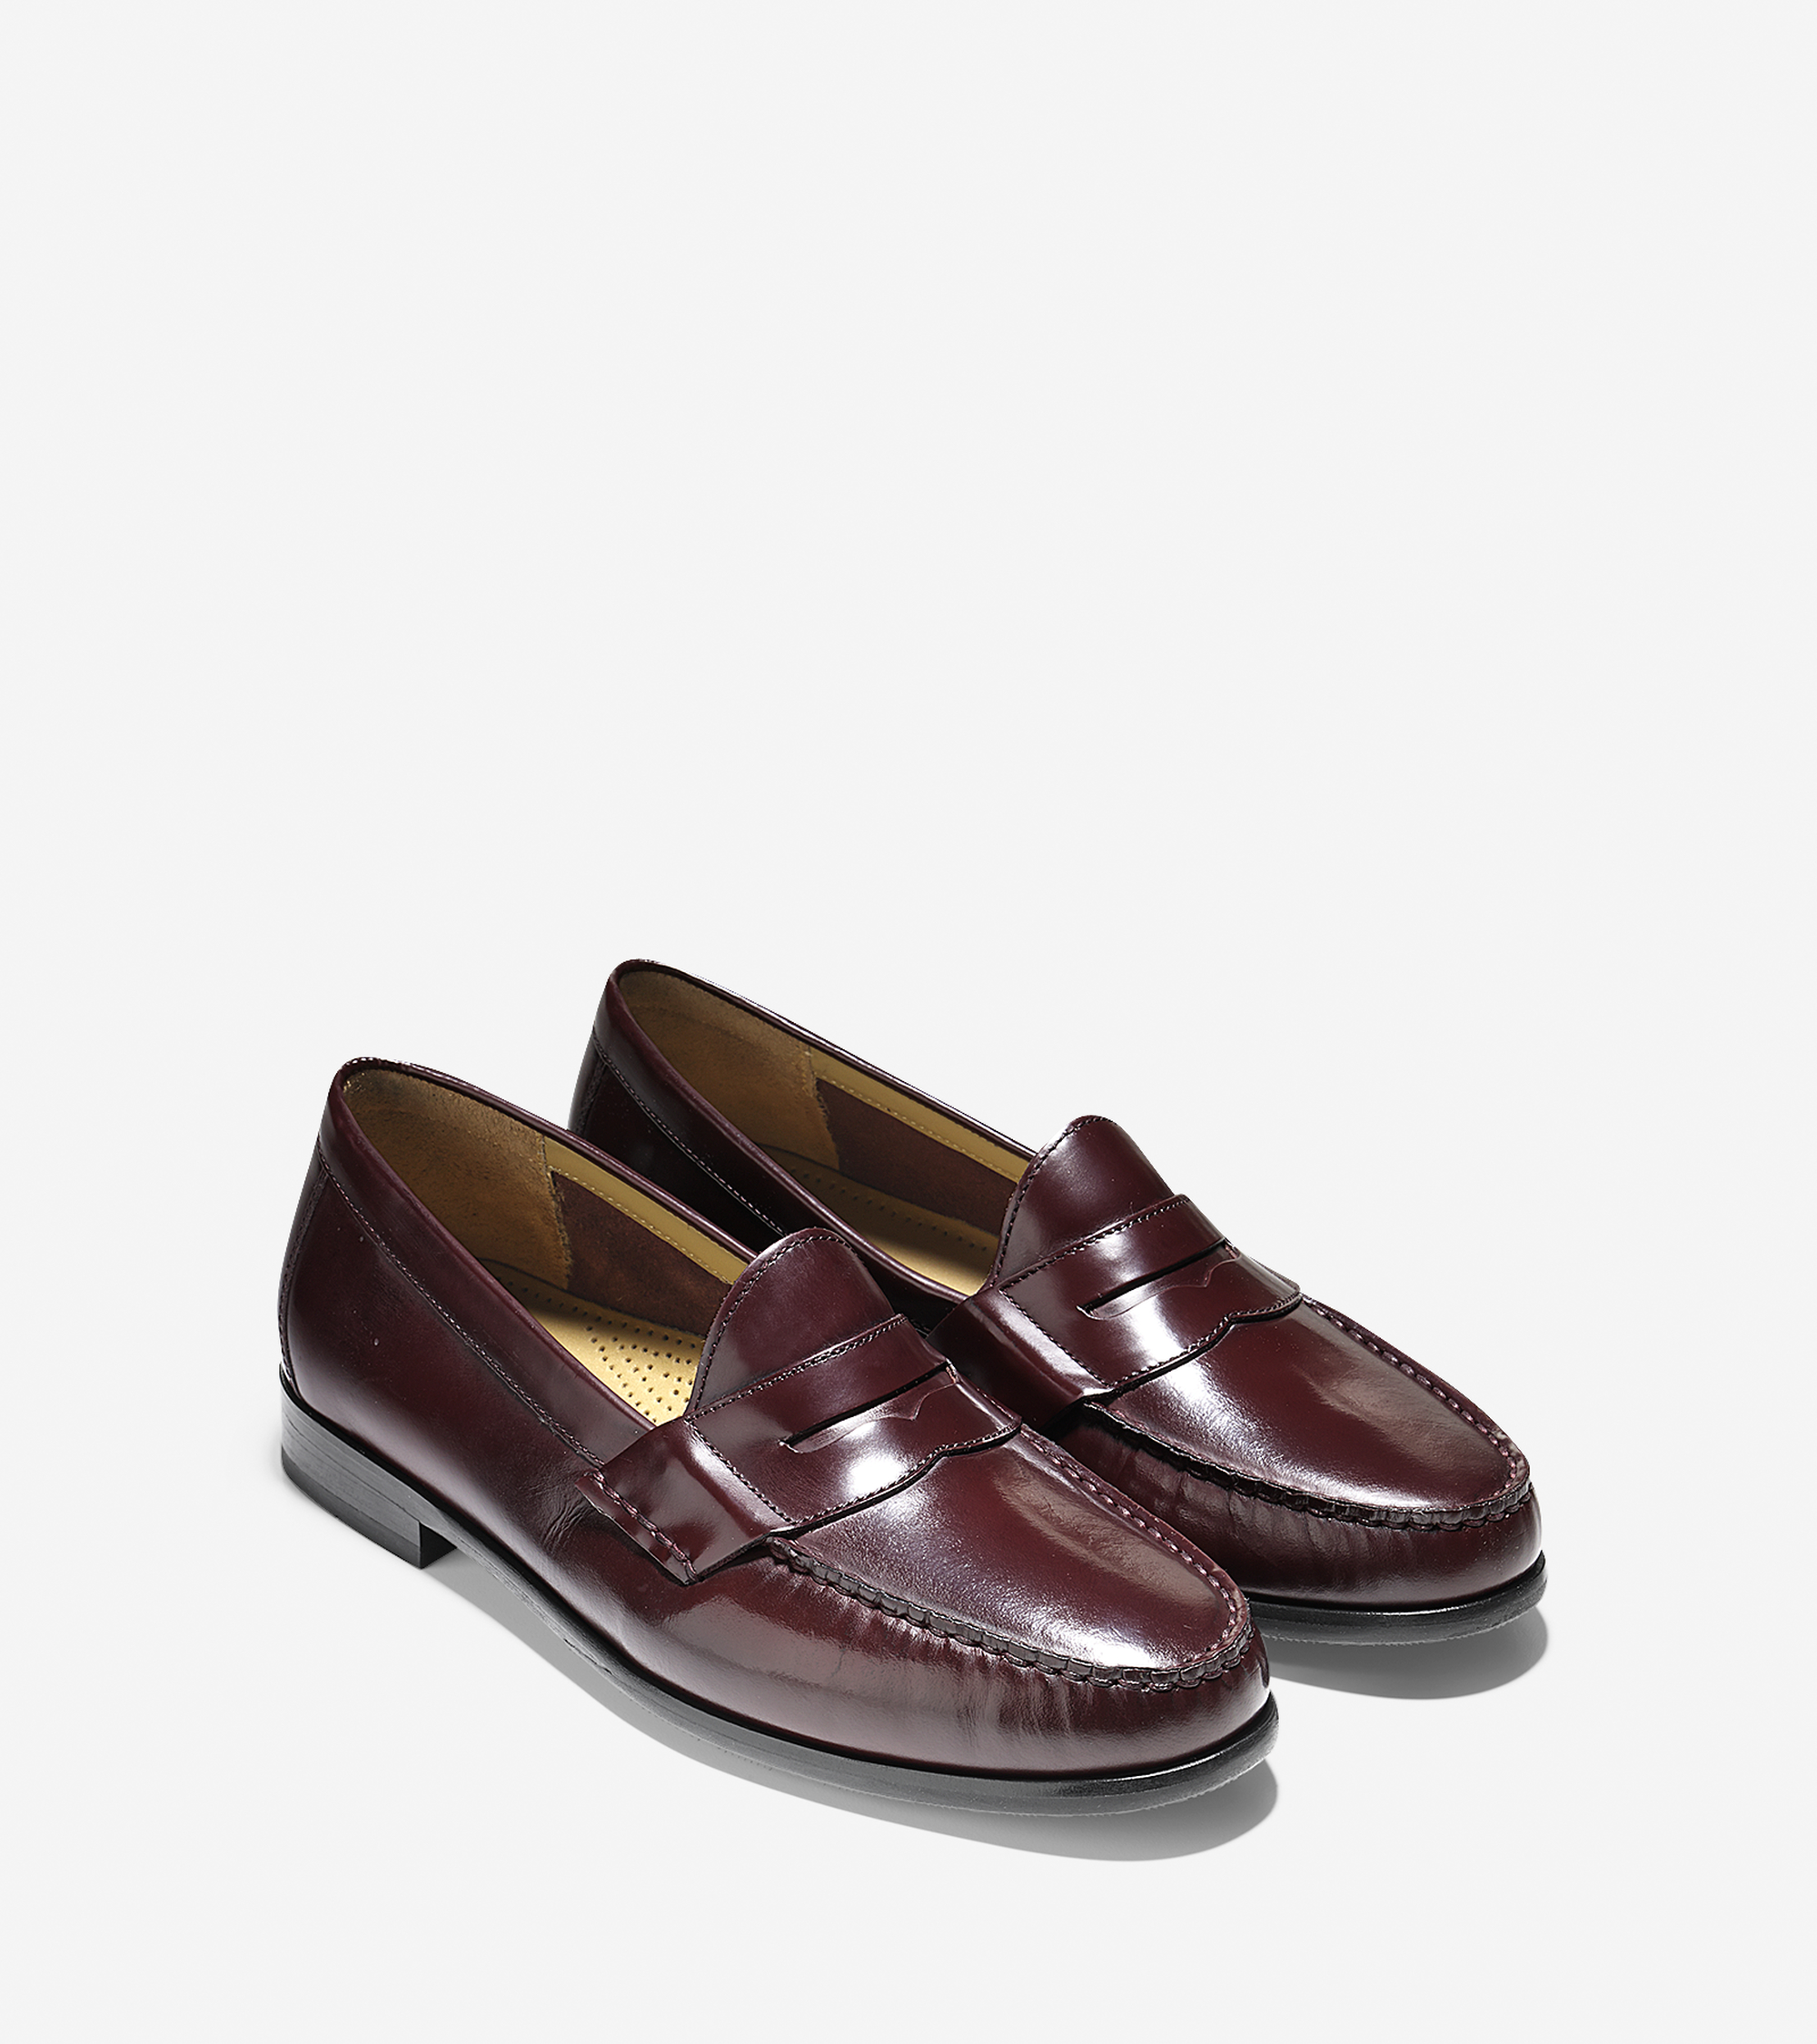 Lyst - Cole Haan Ascot Penny Loafer in Purple for Men